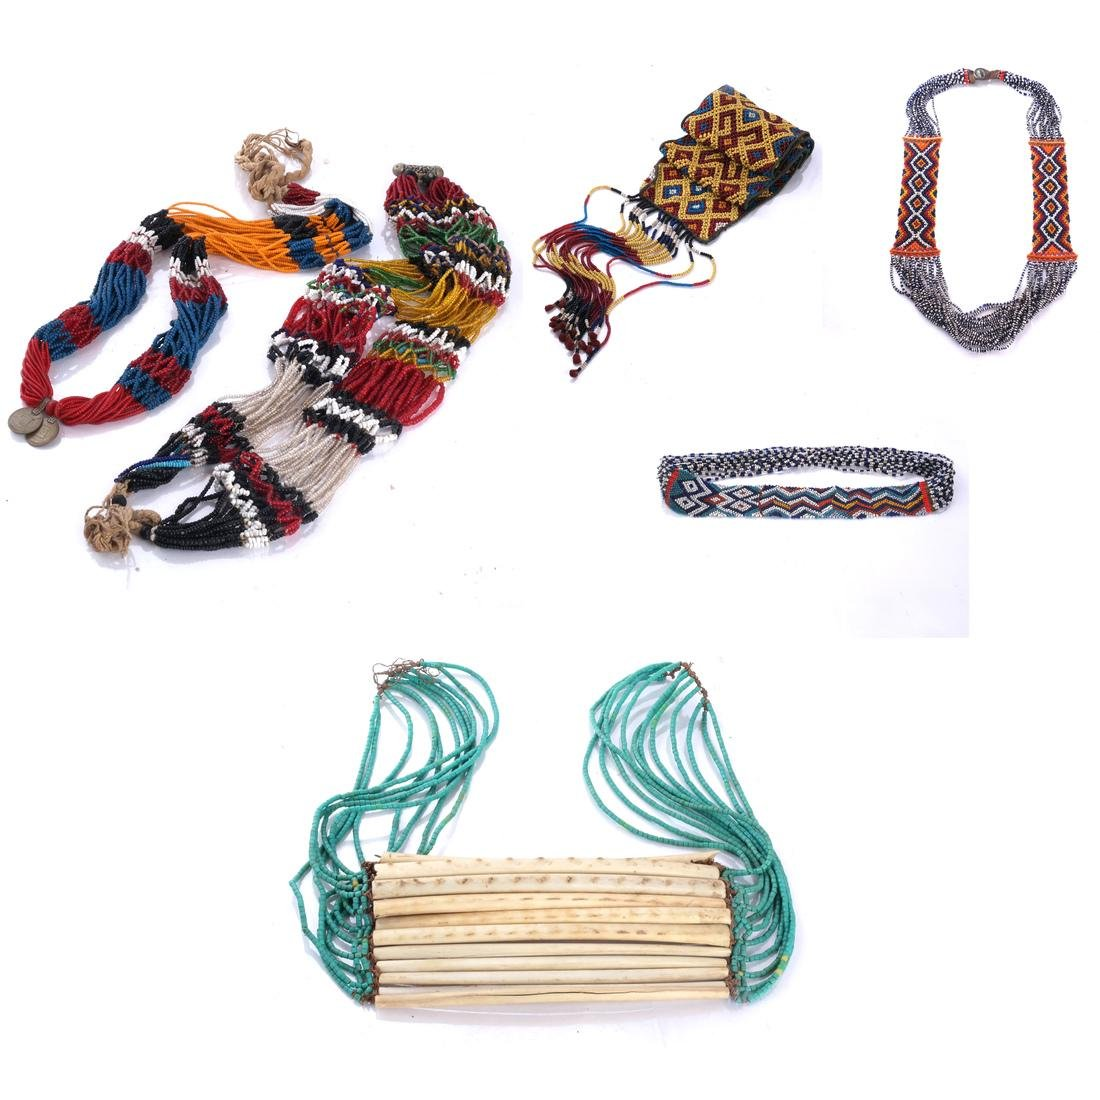 Asian, Tribal Necklaces and Accessories